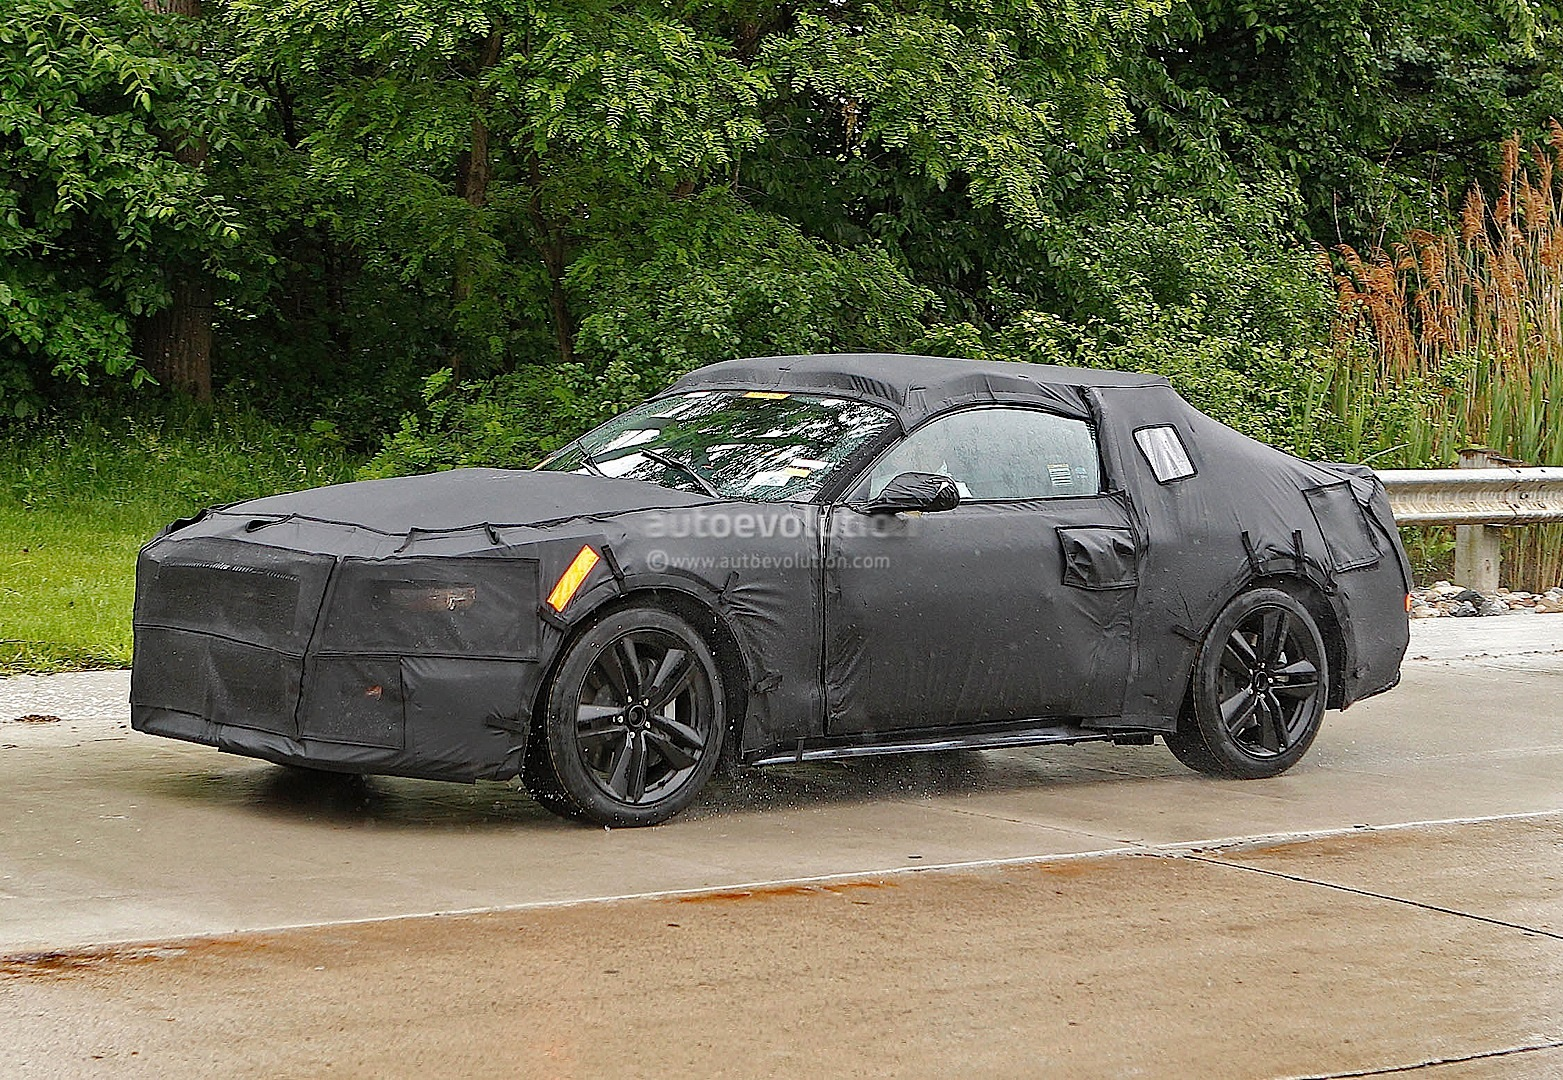 2018 Ford Mustang Racecar Prototype photo - 1